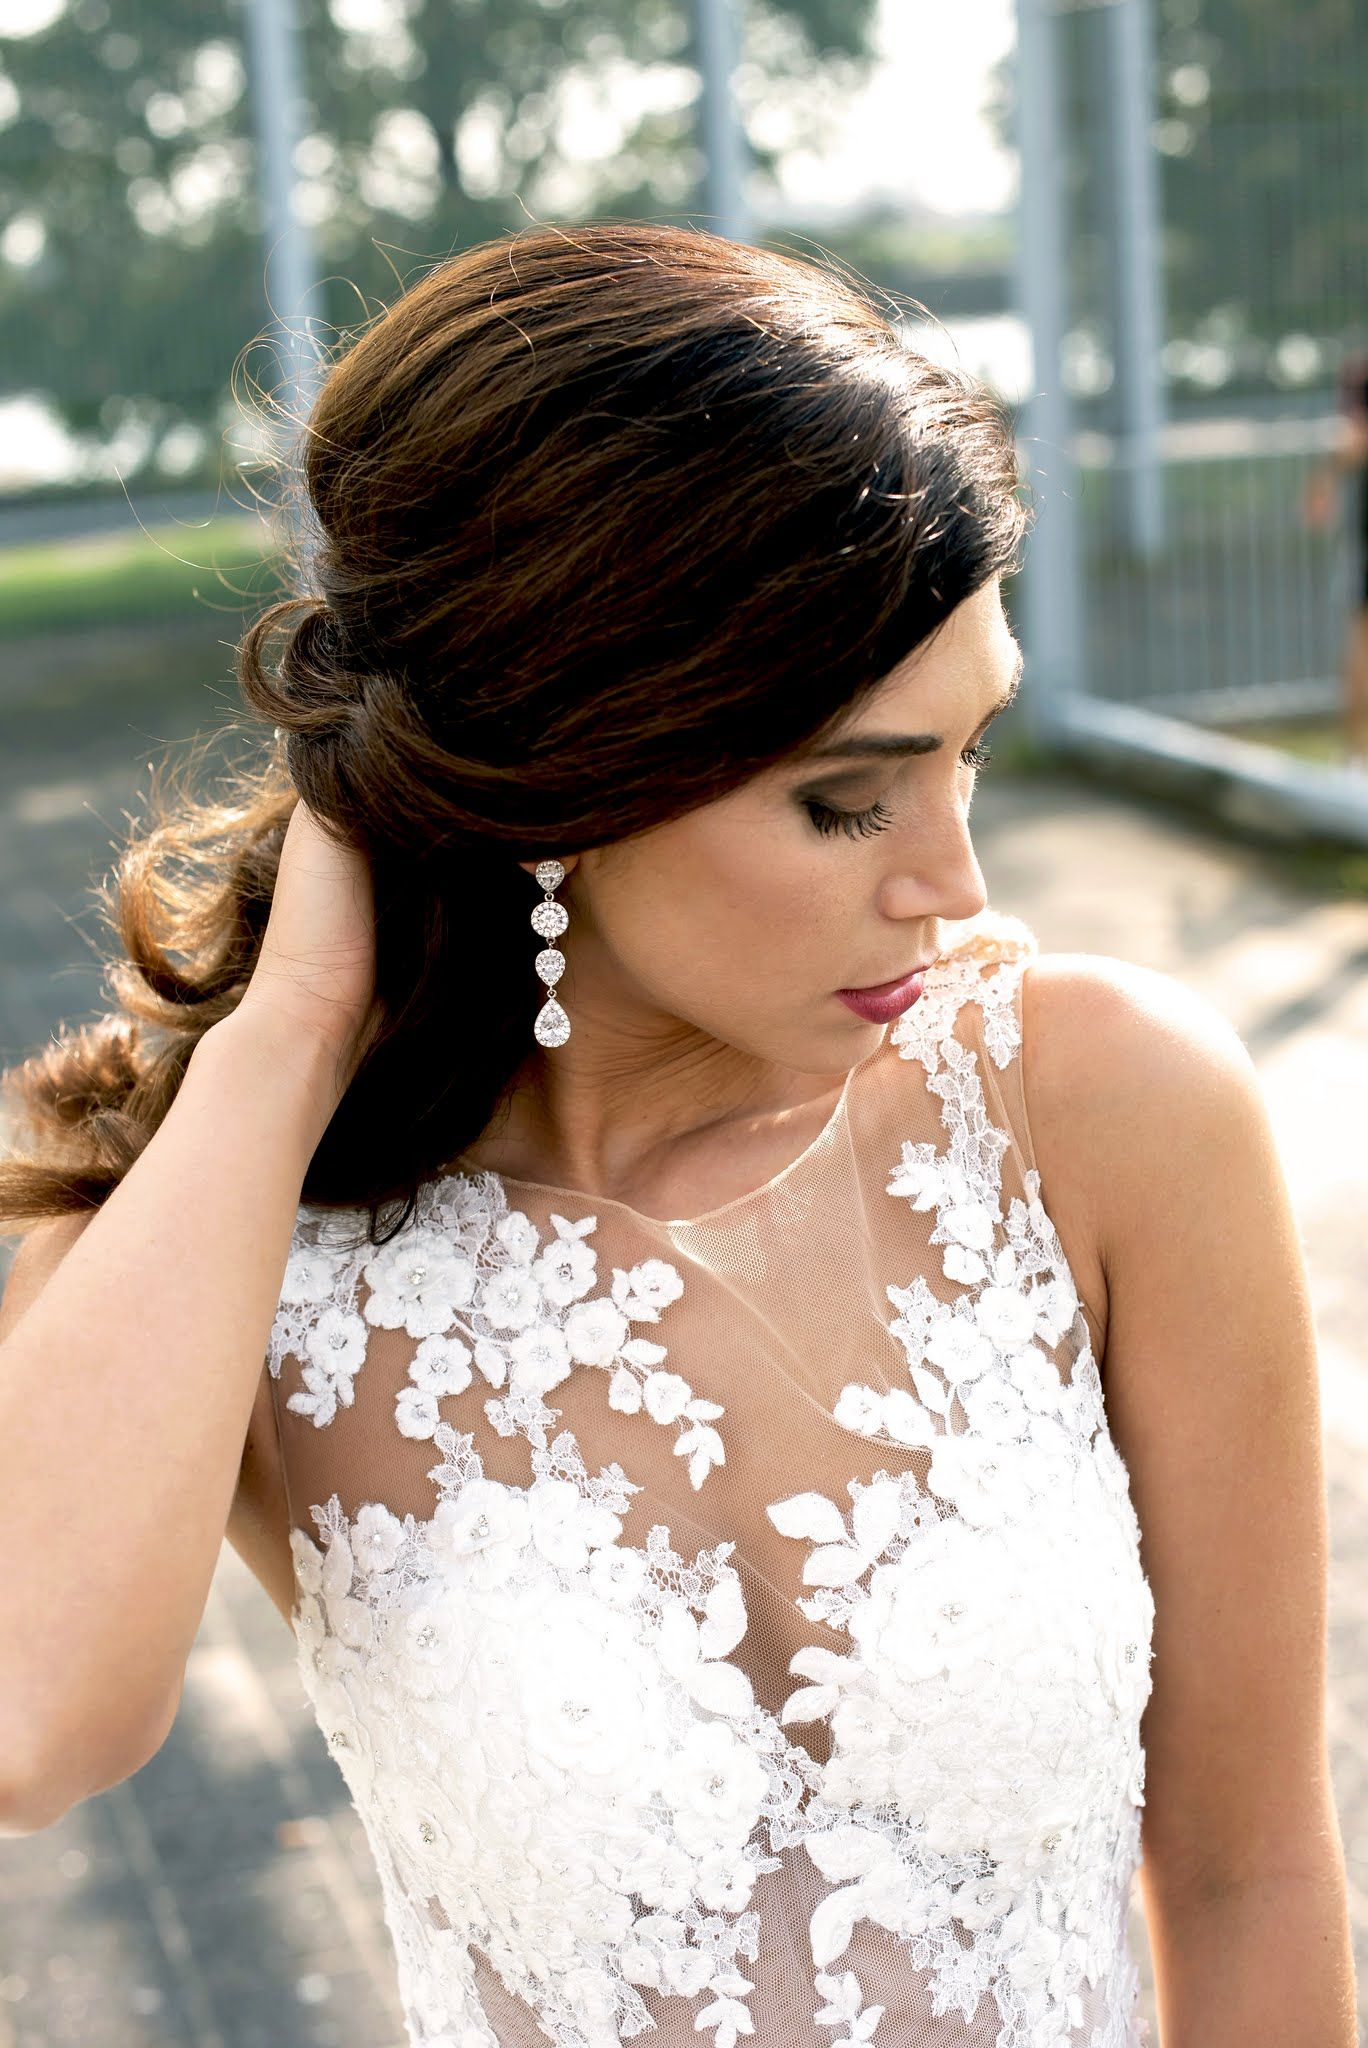 Hair and make up by revealyourbeauty vealyourbeauty welke